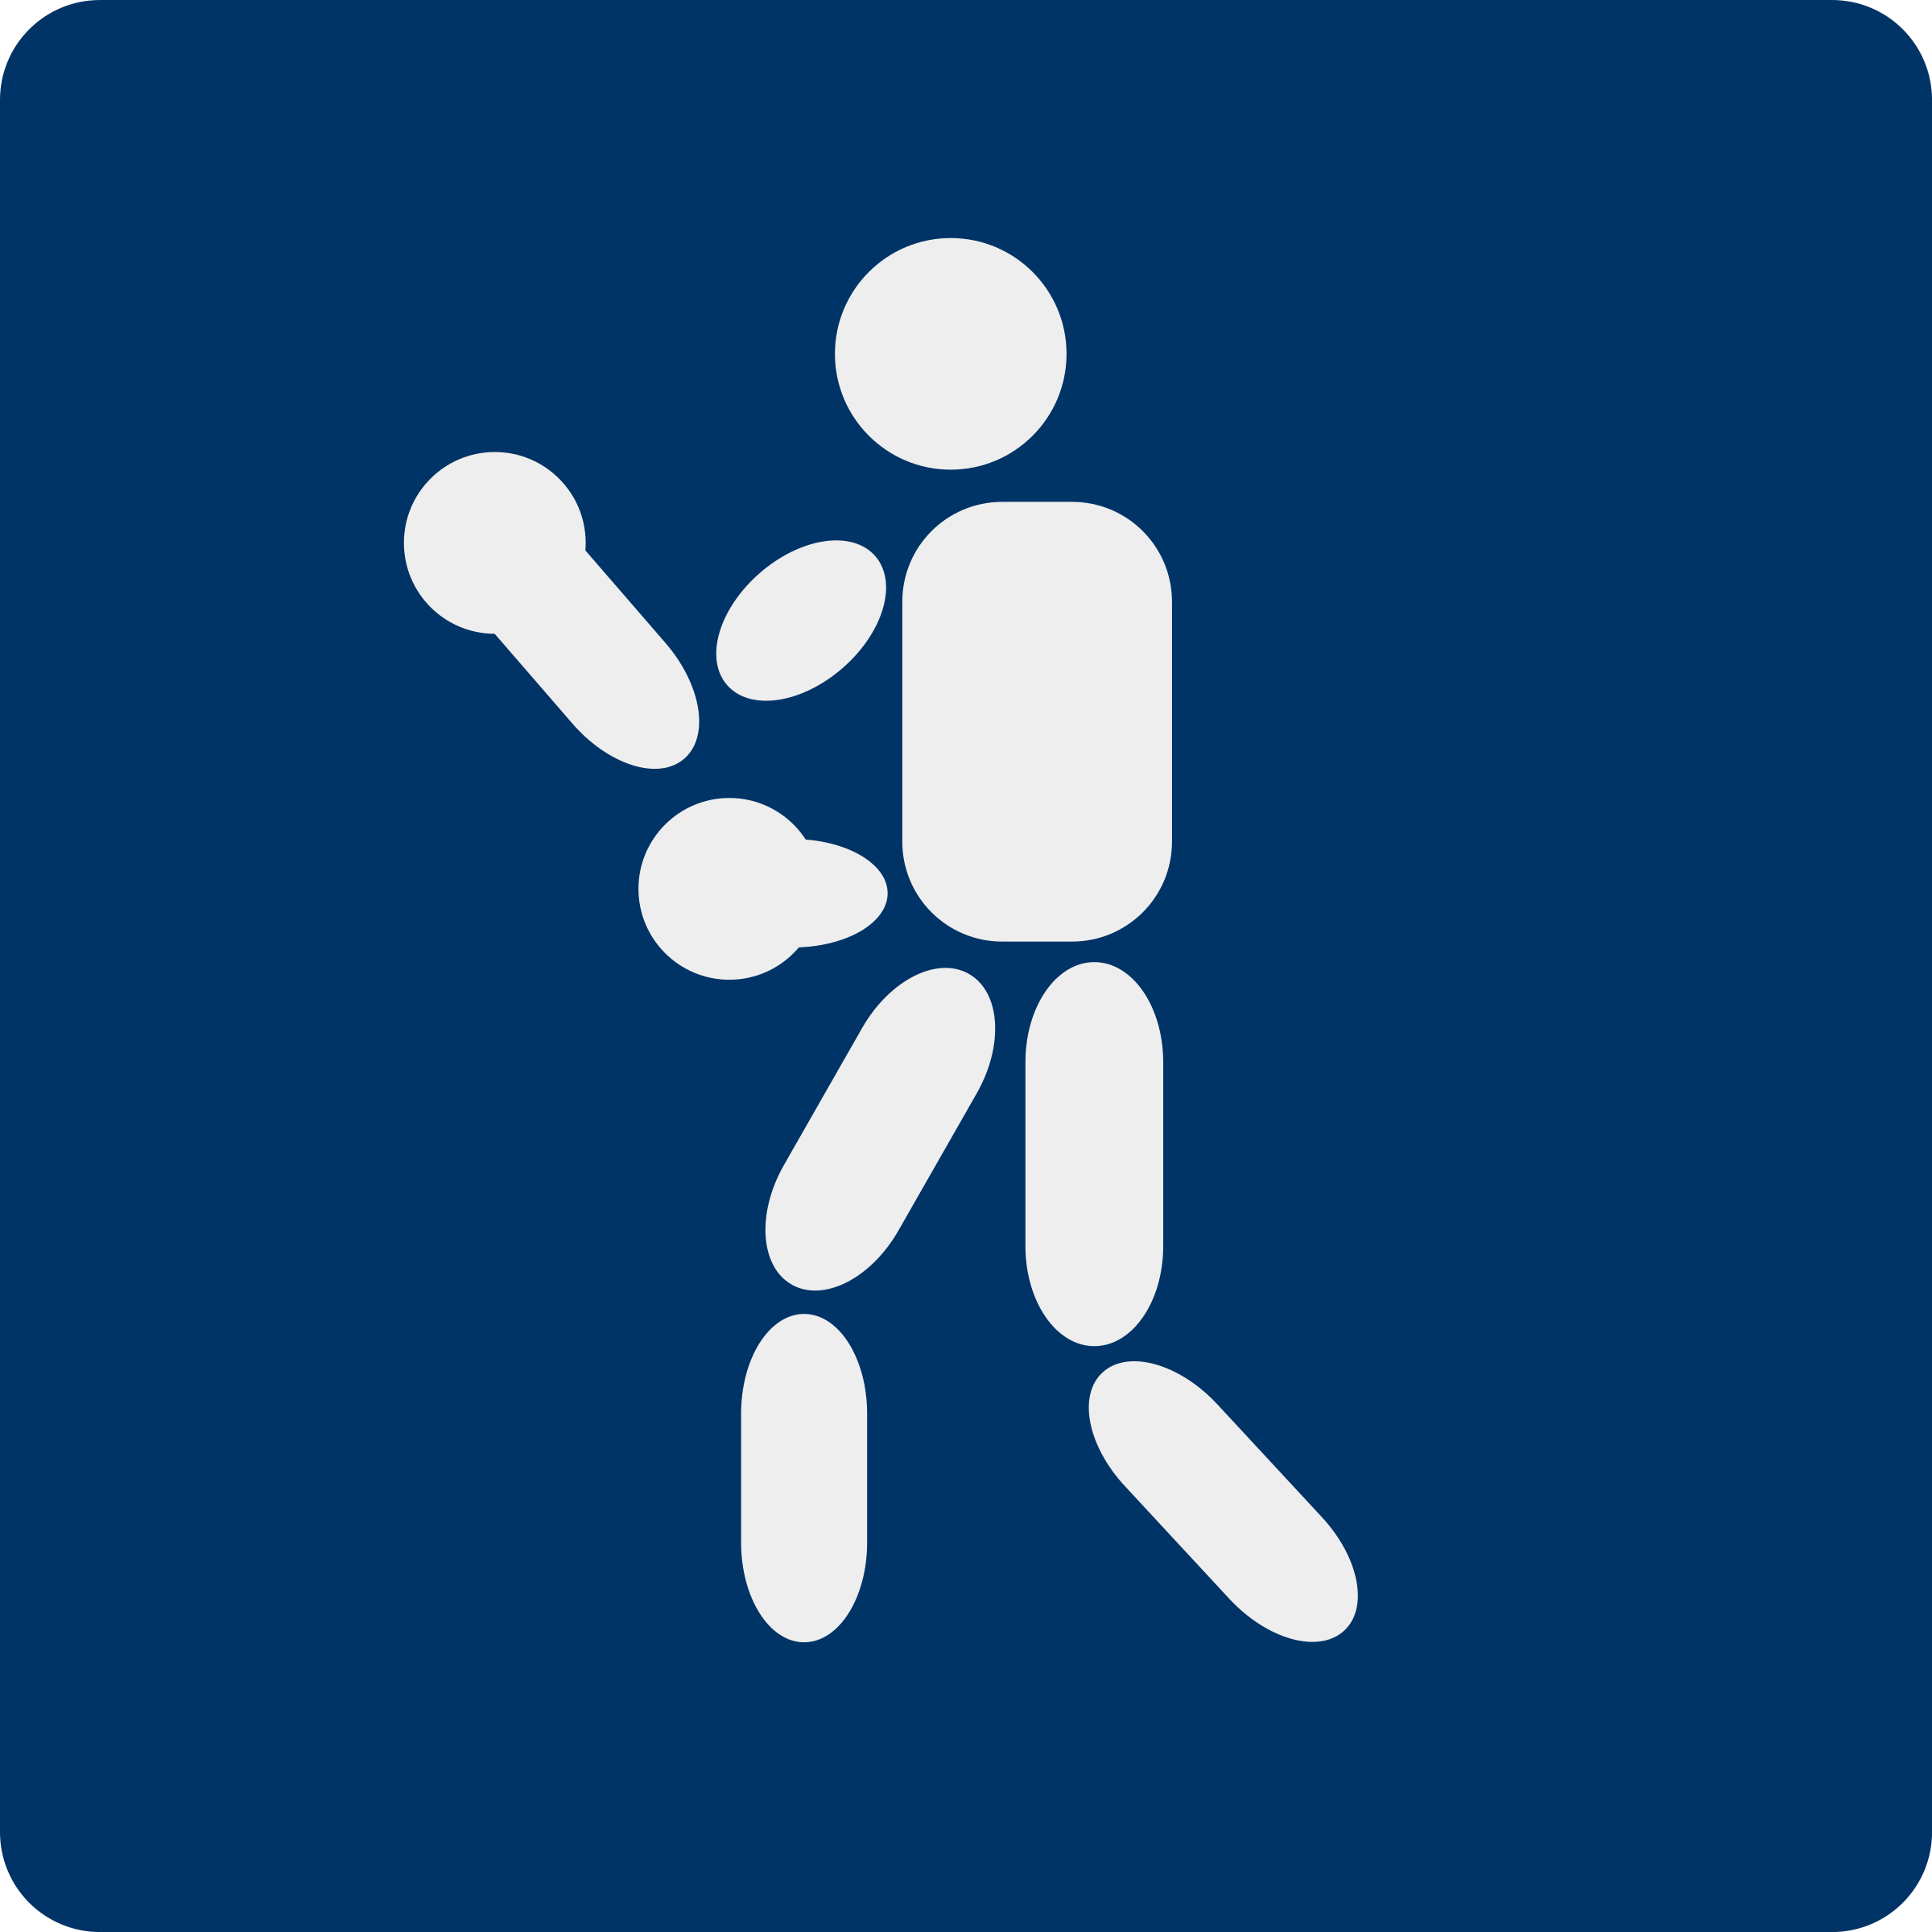 boxing pictogram by shokunin